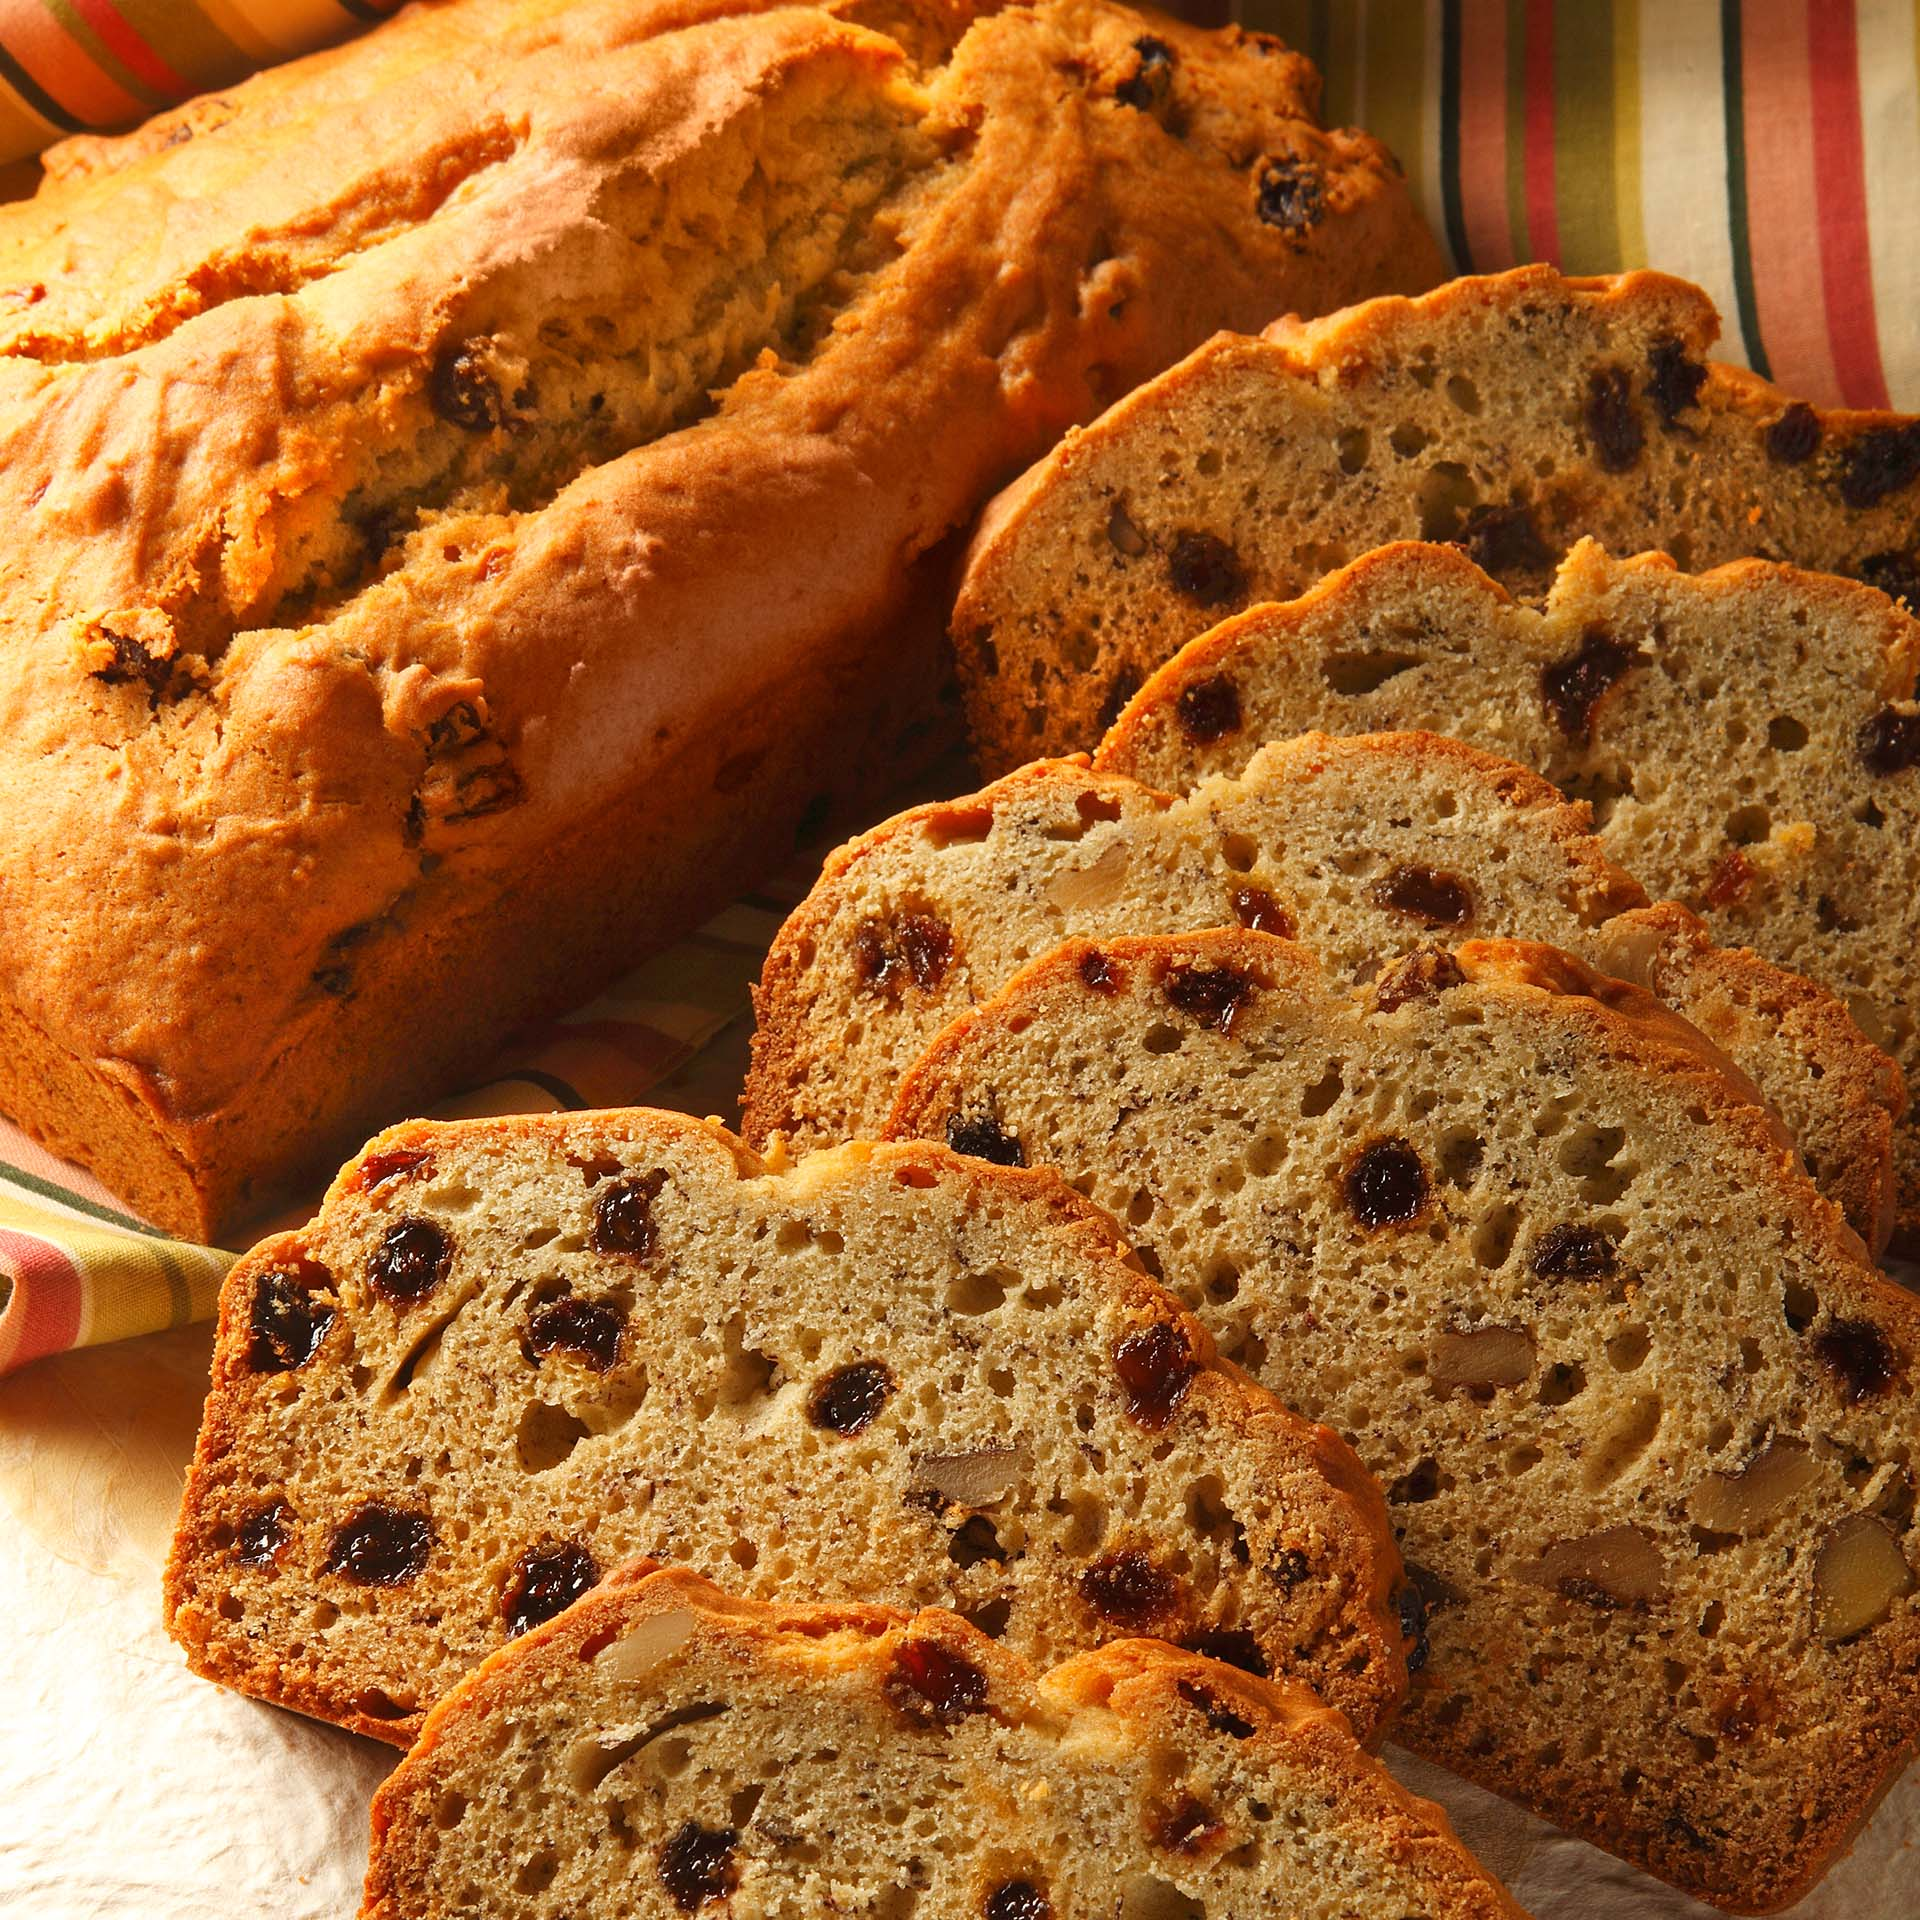 Raisin Banana Bread California Raisins